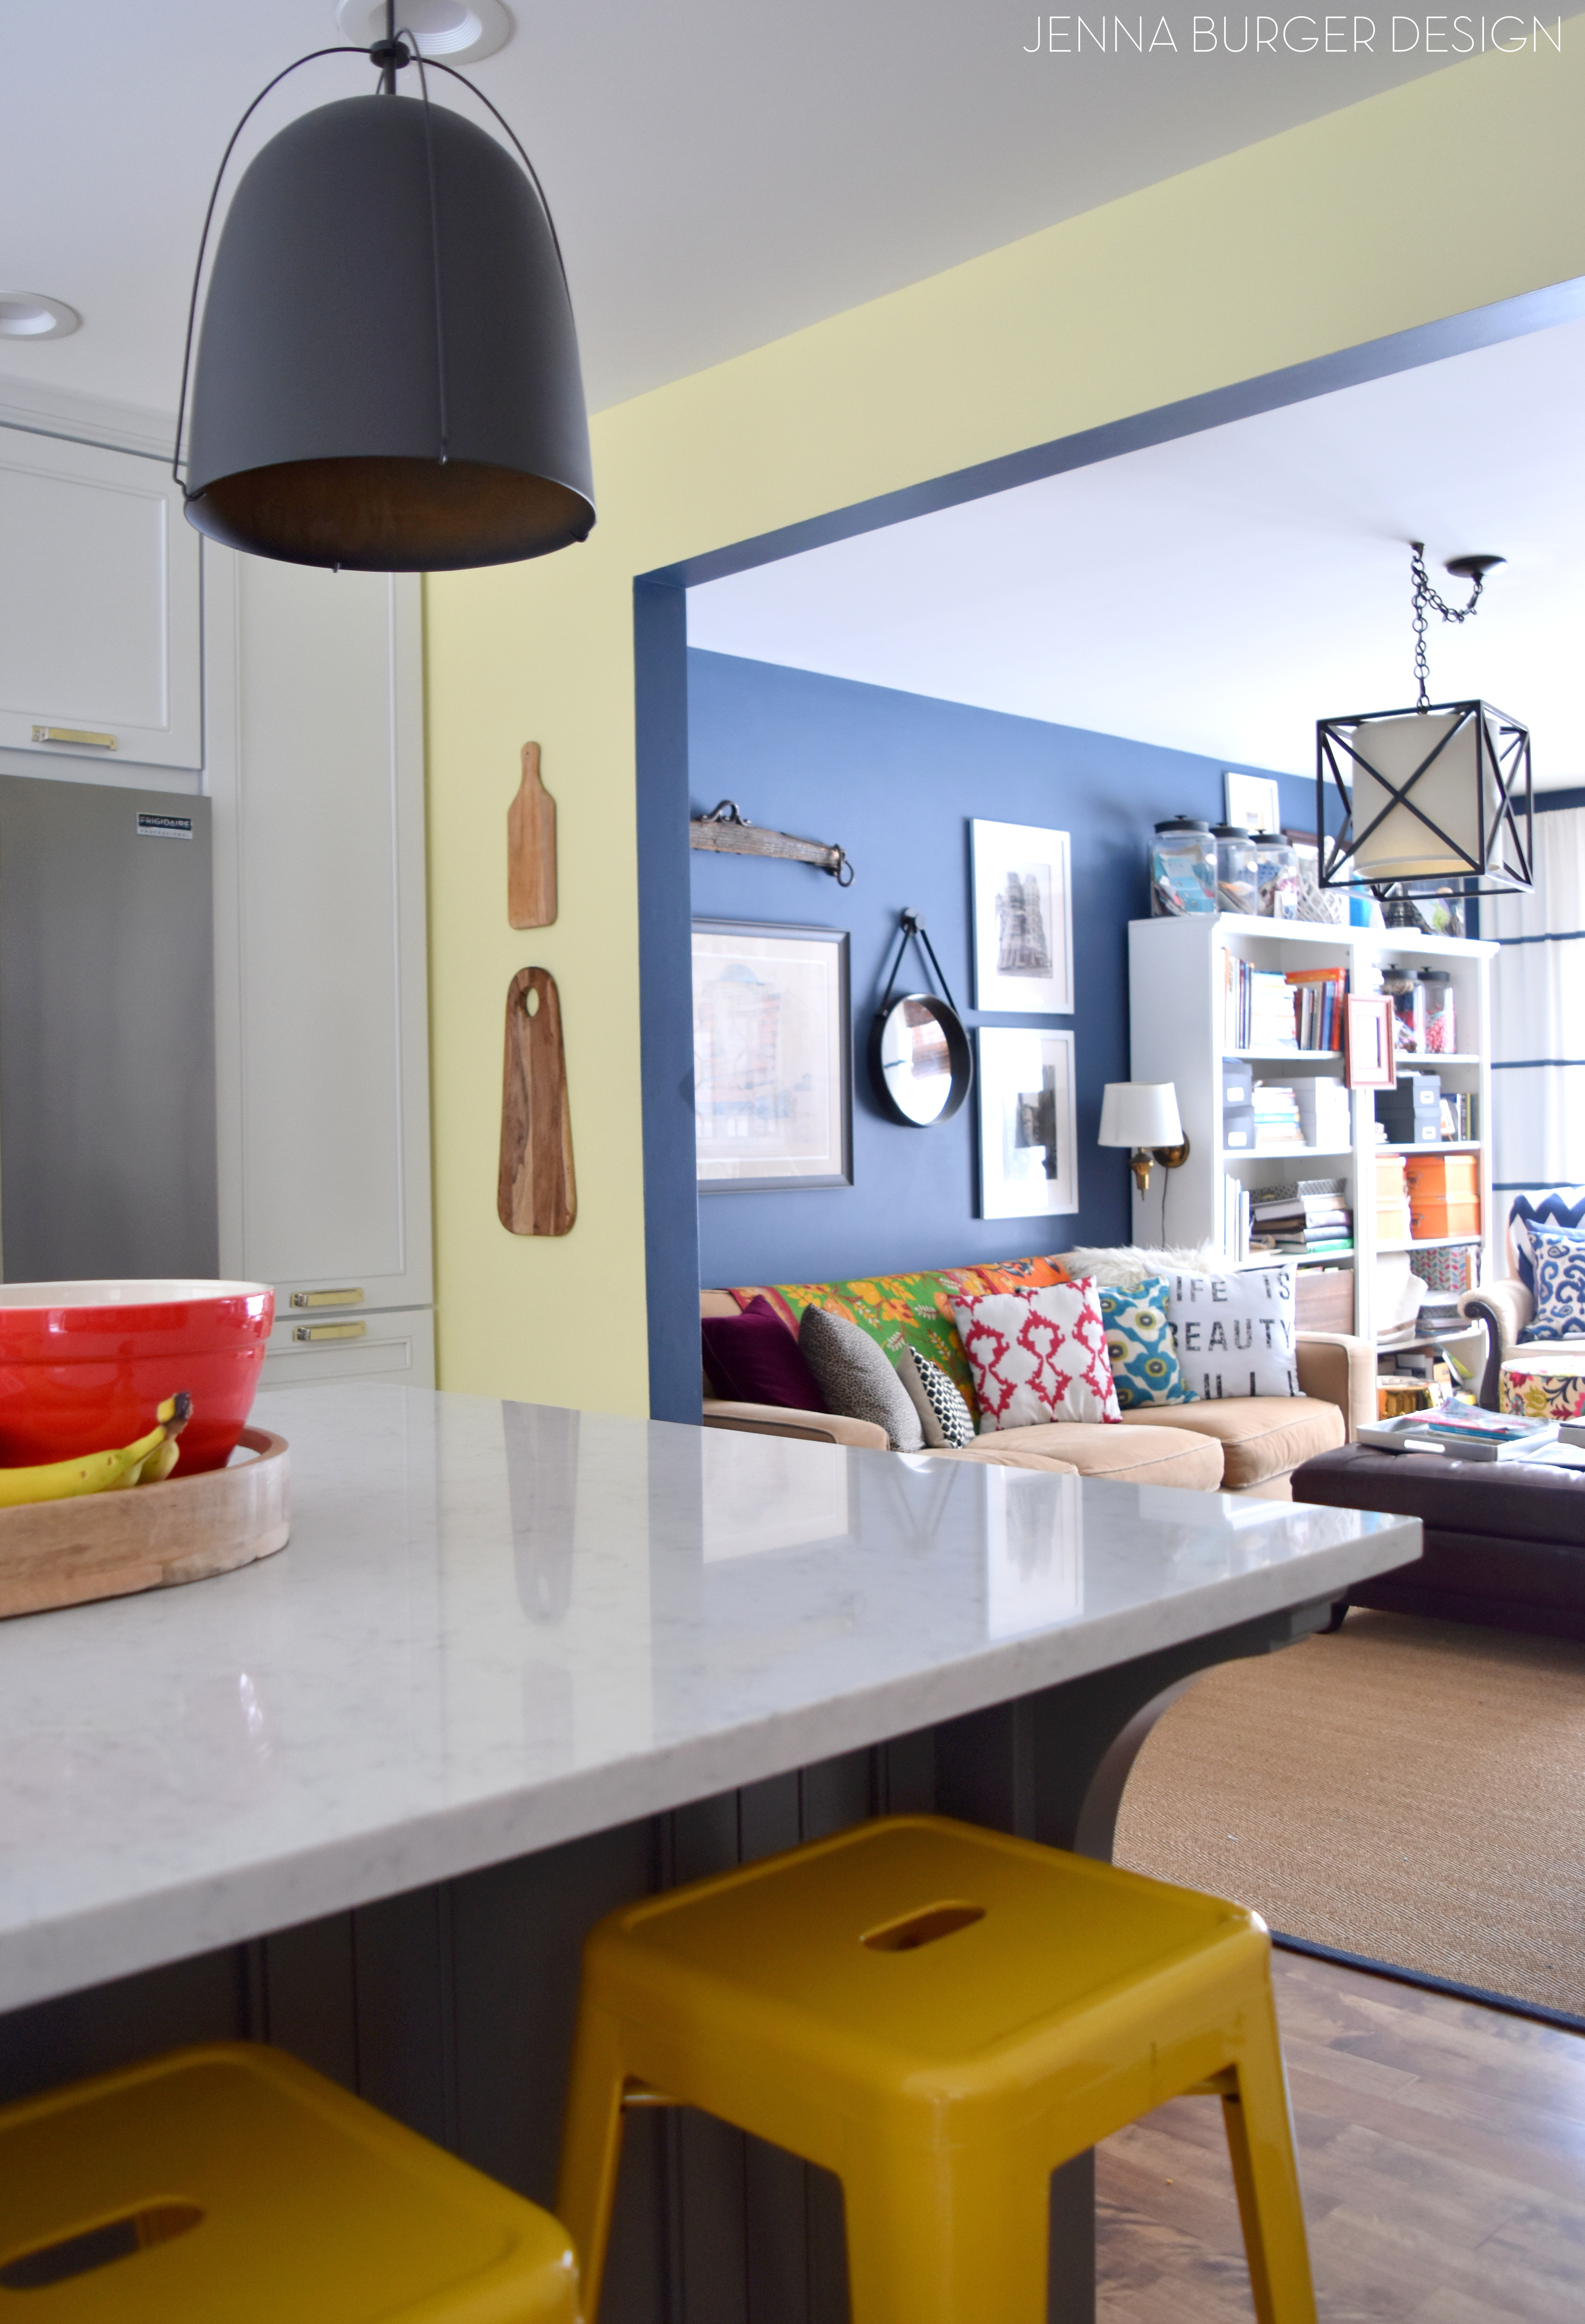 Kitchen Renovation Choosing A Paint Color For An Open Concept Floor Plan Adding Accents